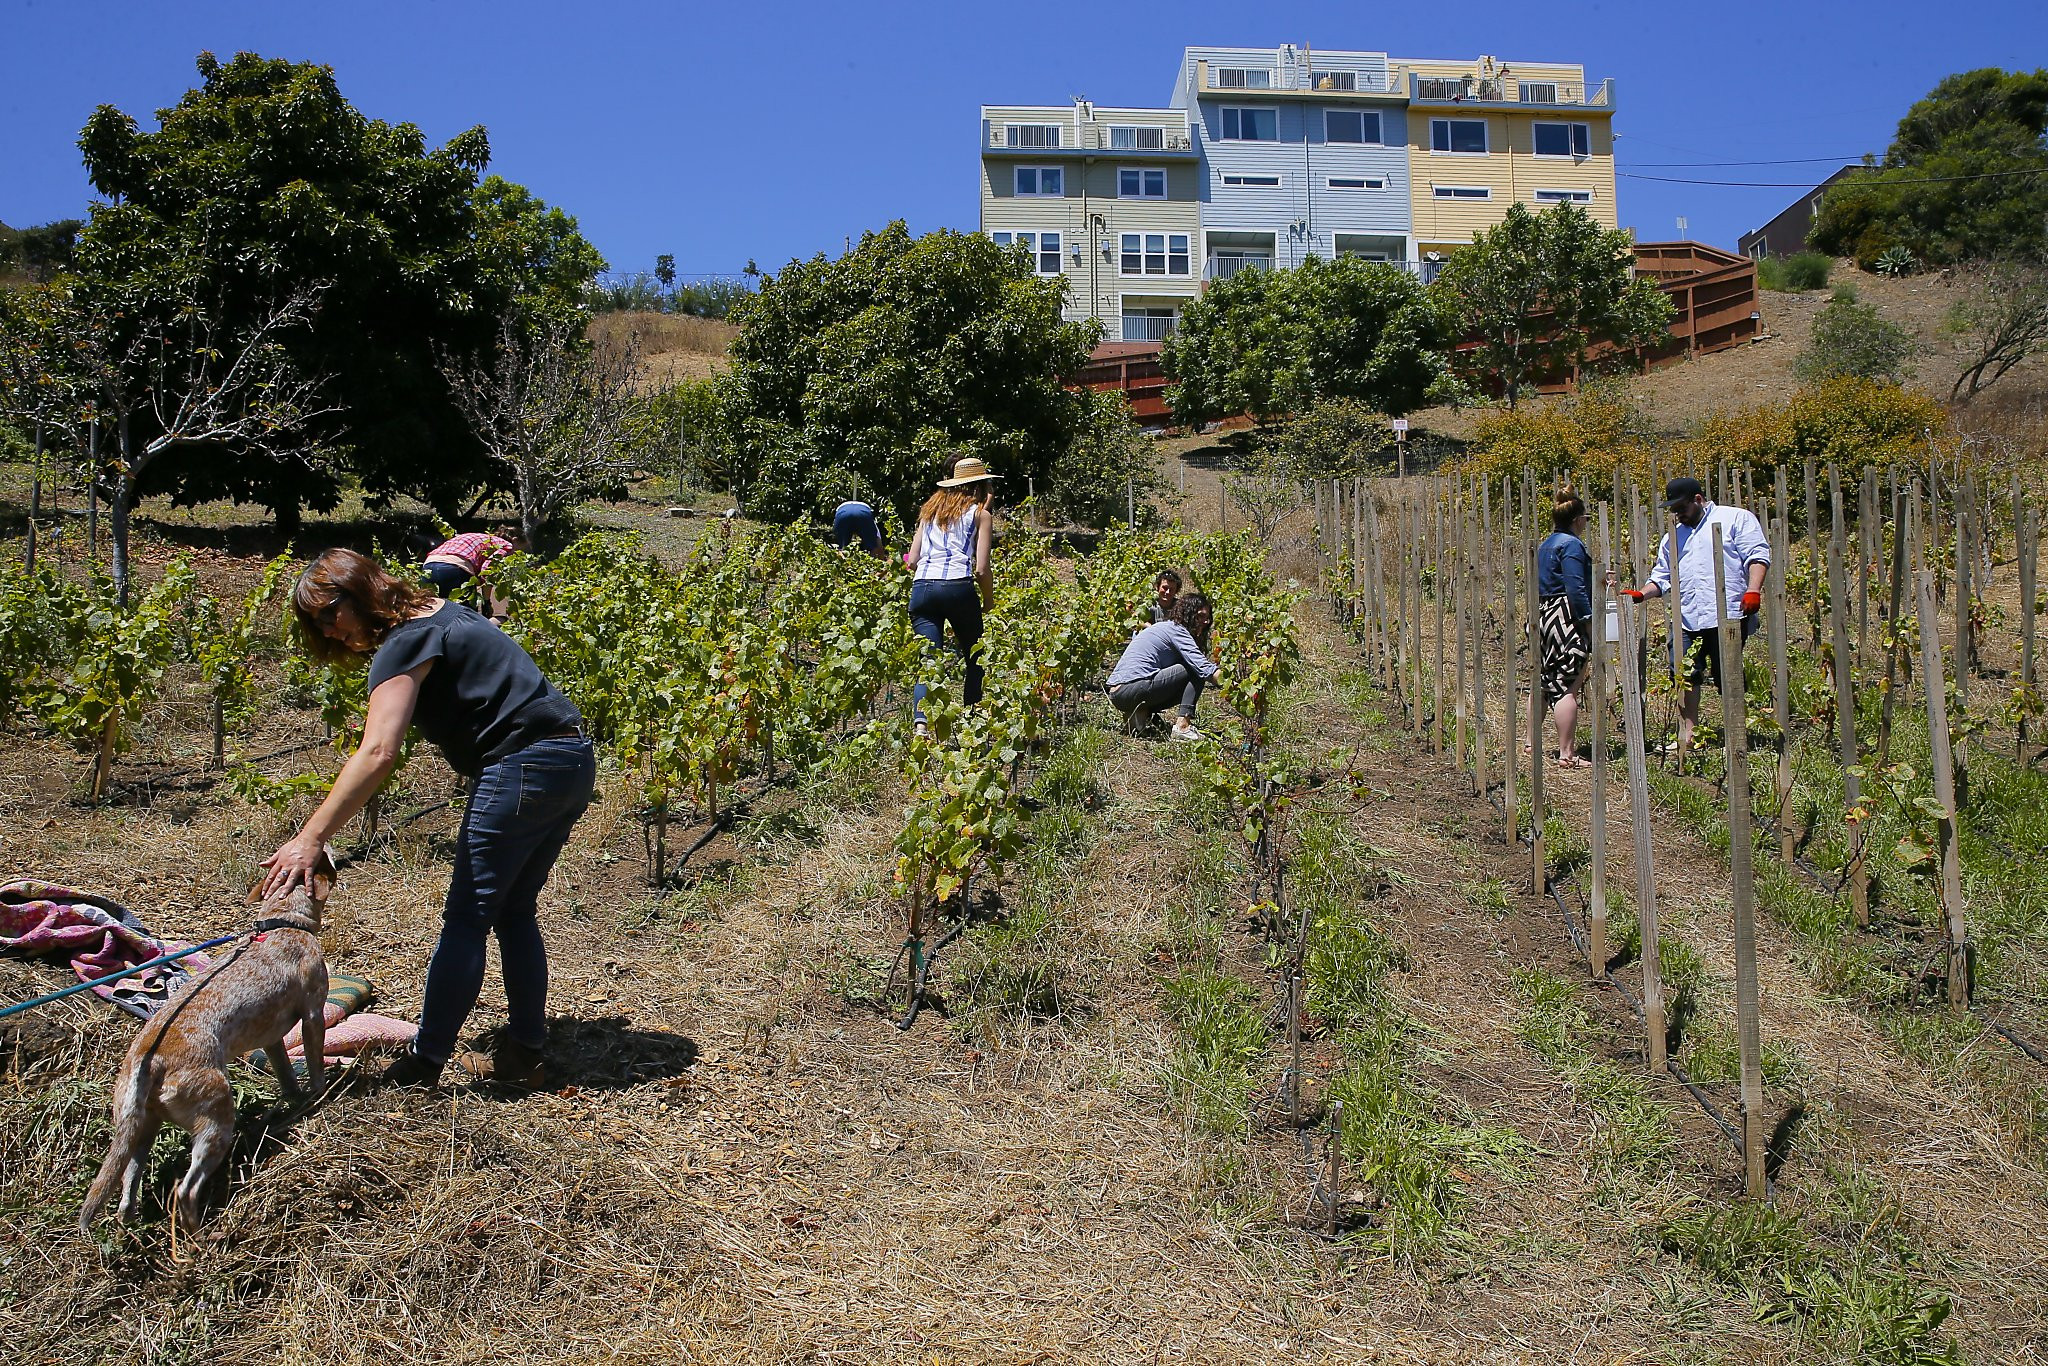 Wine Country in The City: Making Pinot Noir in heart of S.F.